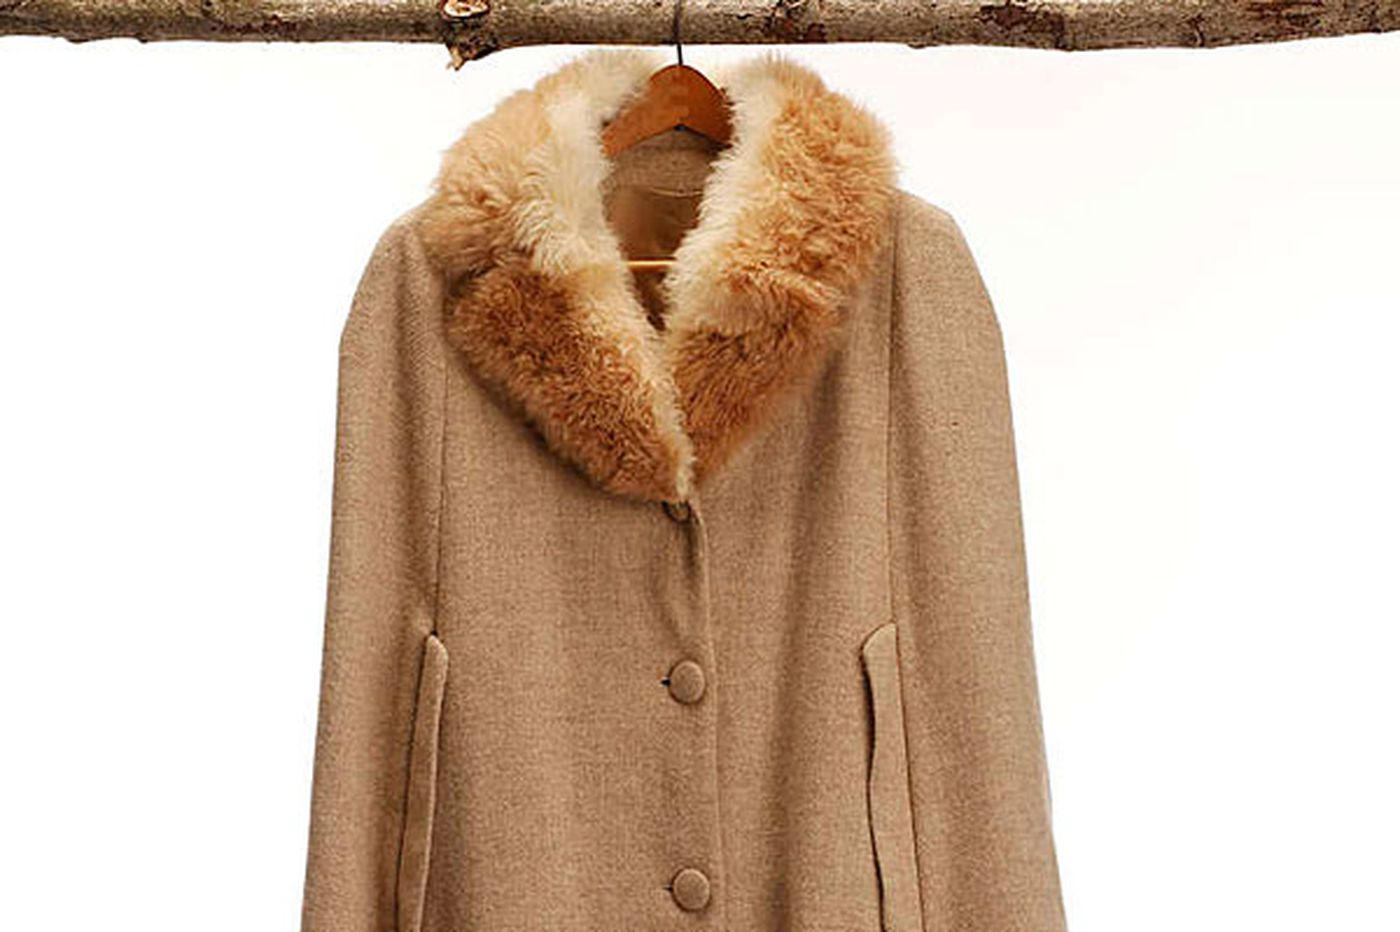 Charting life's changes - through coats